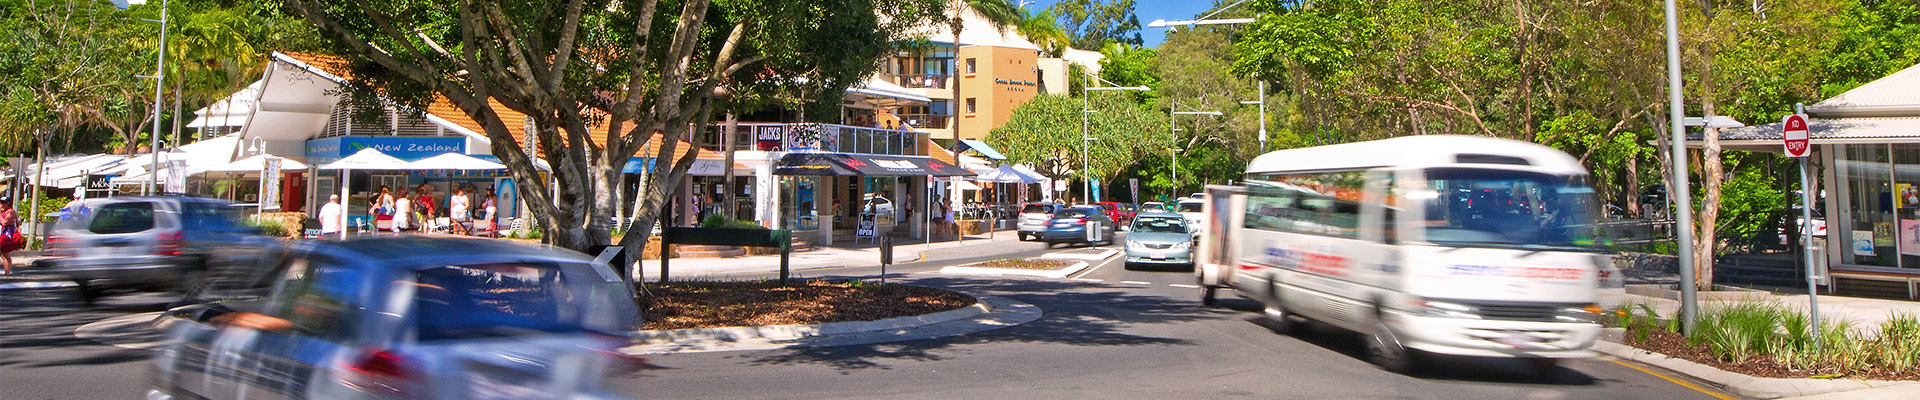 https://assets.boxdice.com.au/richardson-wrench-noosa/attachments/83f/218/how_to_get_to_noosa.jpg?ea54d3baa2f7620bcf7abe6b54eb263d